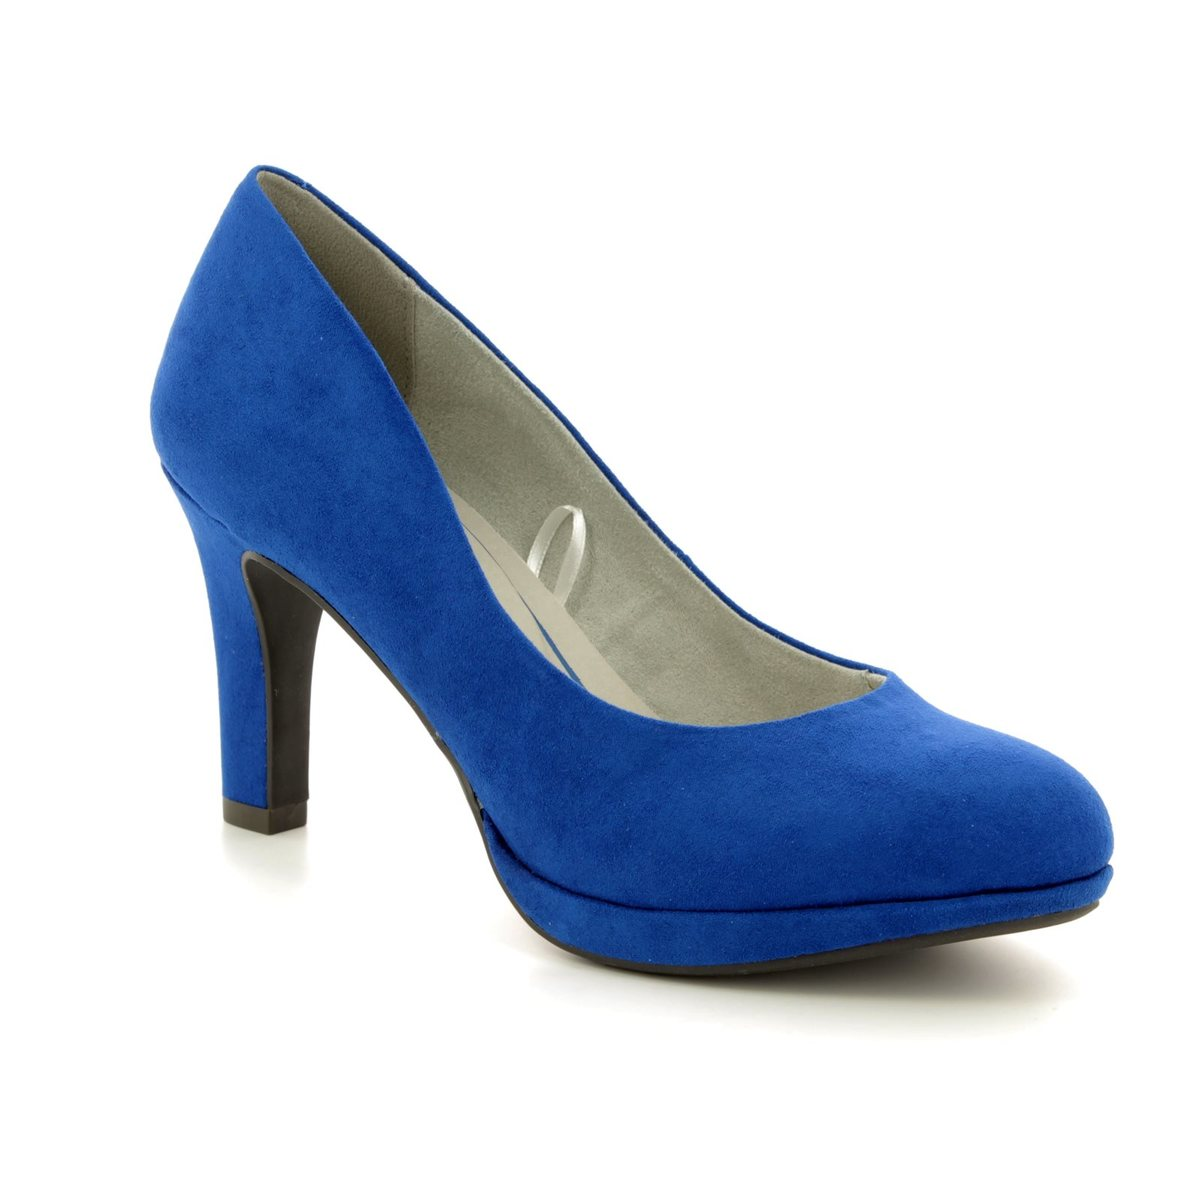 4f7bdc2e668 Marco tozzi badami blue high heeled shoes jpg 1200x1200 Marco tozzi footwear